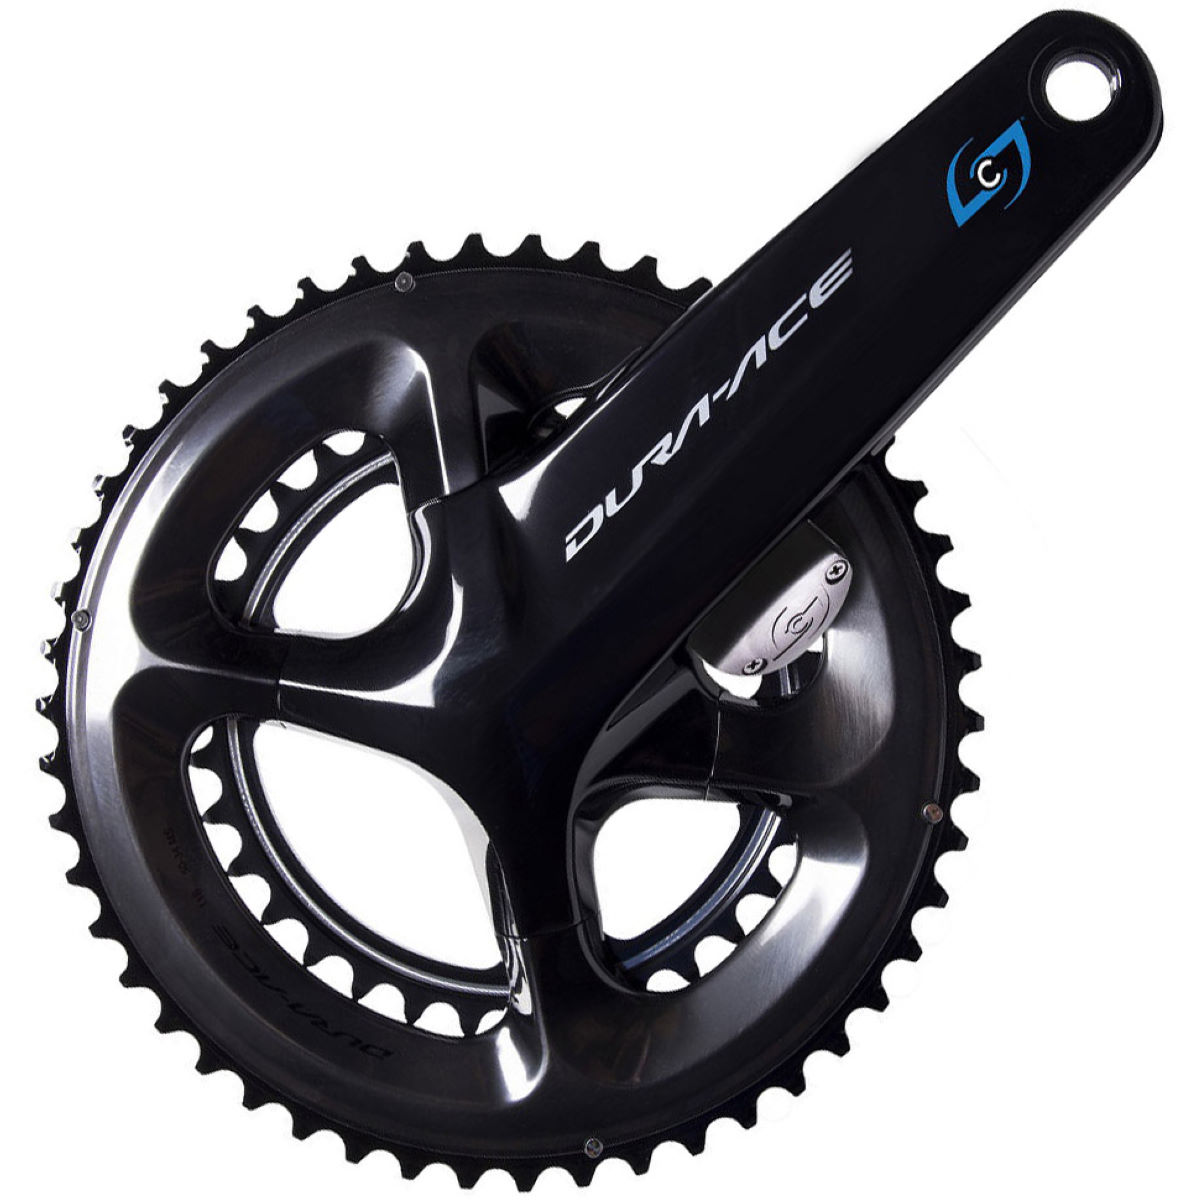 Stages Cycling Power R G3 Cw Chainrings Dura-ace R9100 - Black